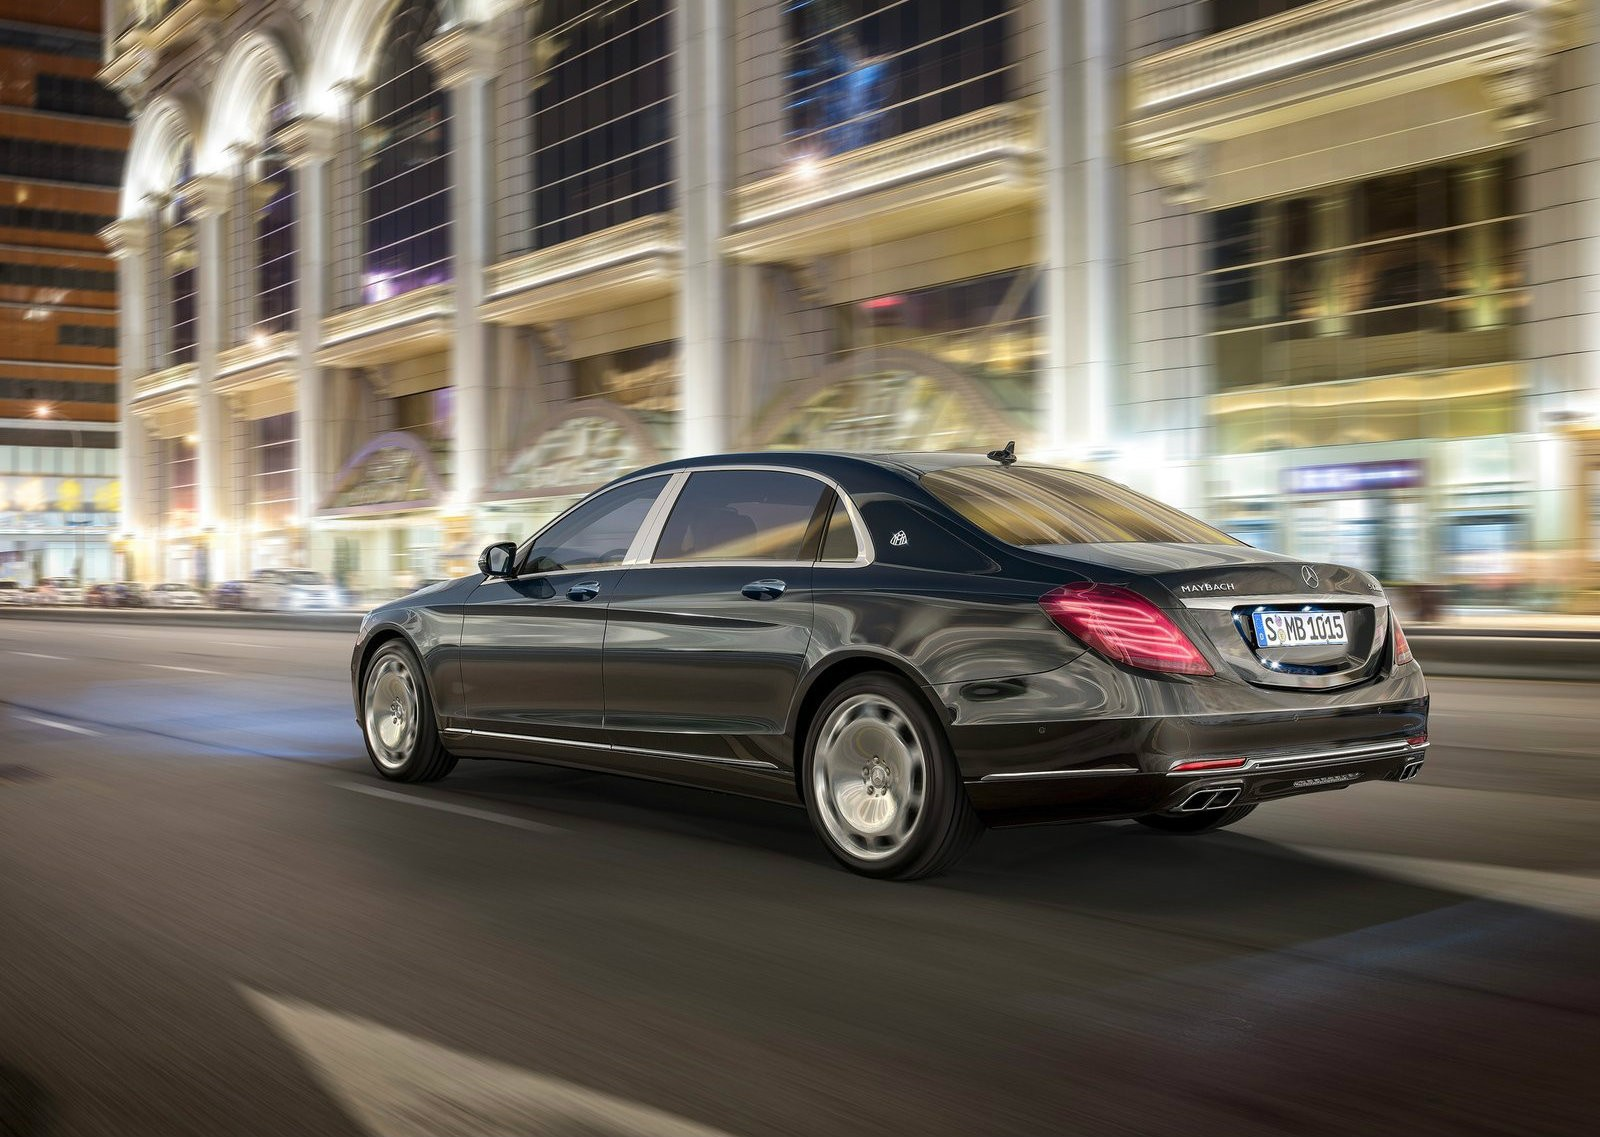 Mercedes-Maybach S500 Priced at €134,053, S600 is €187,841 in ...